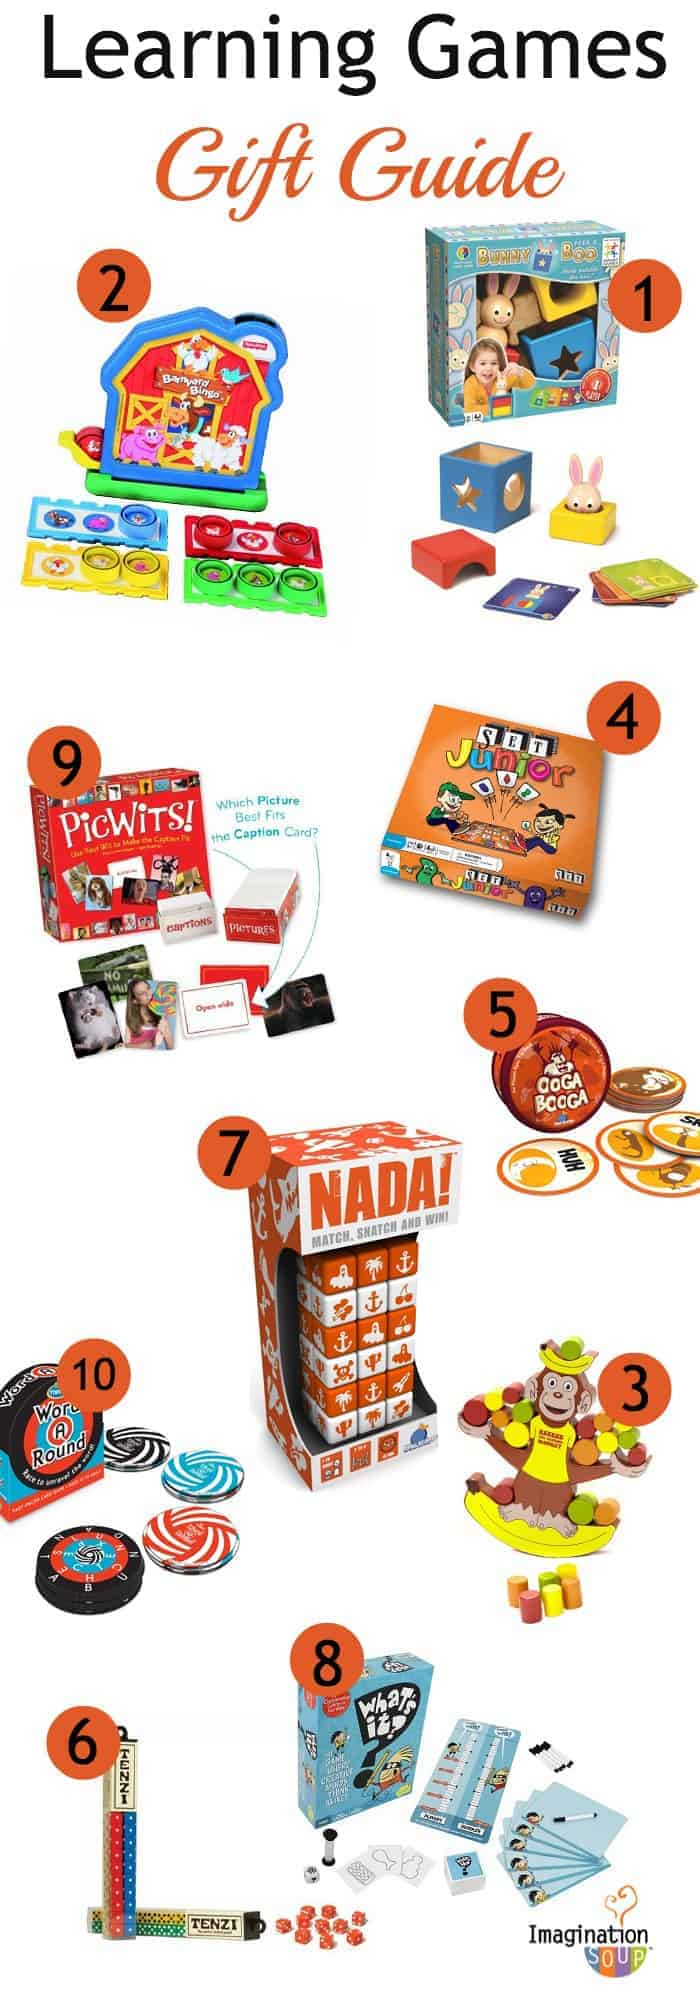 learning games gift guide on Imagination Soup